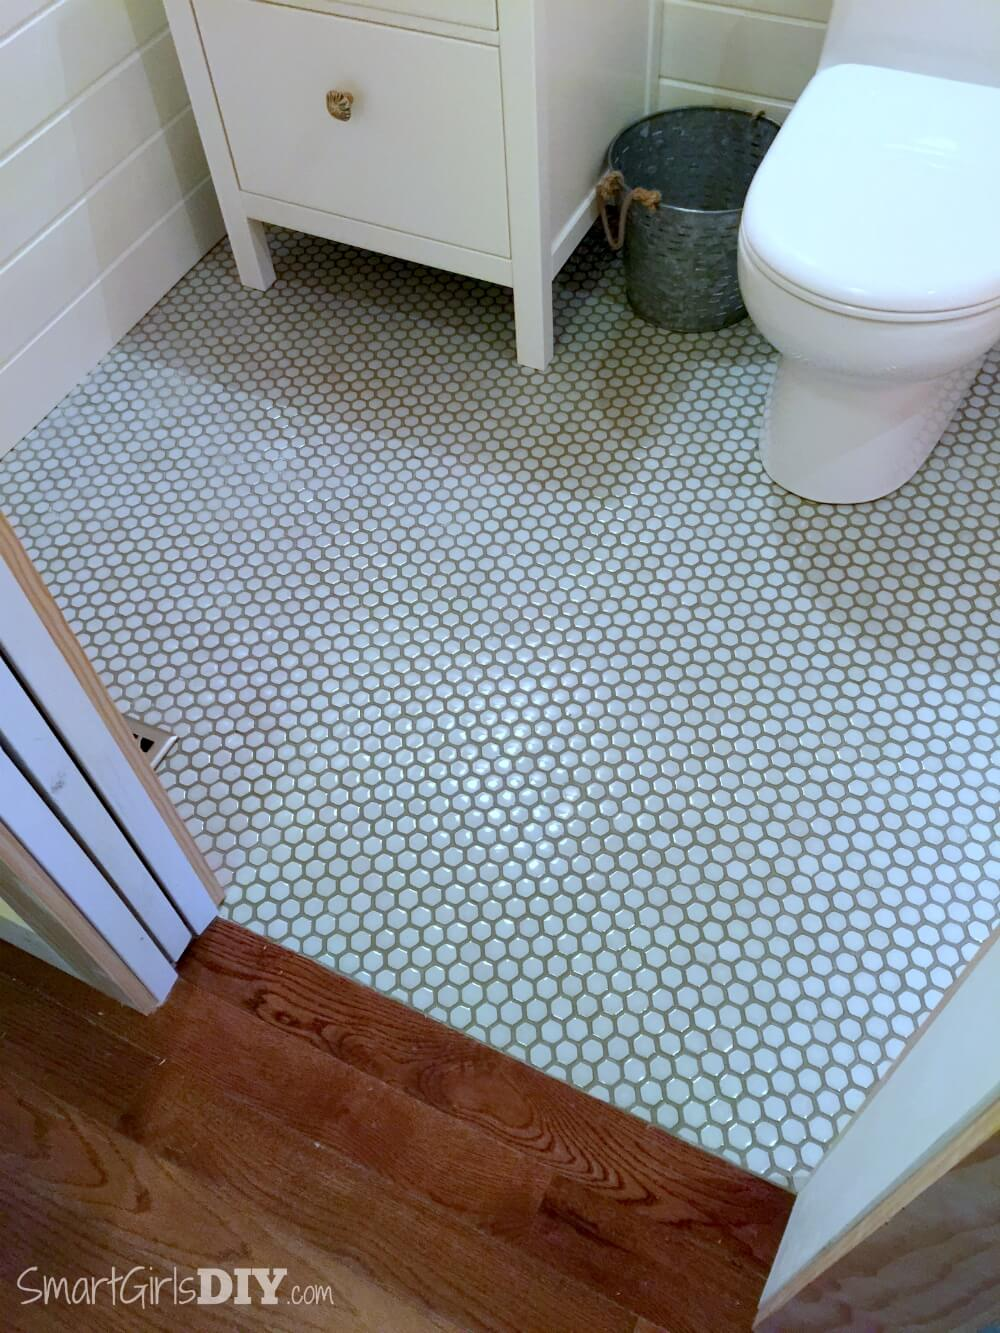 Beau Bathroom Makeover   Hexagon Floor Tiles With Painted Grout Lines Transition  To Hardwood Floor